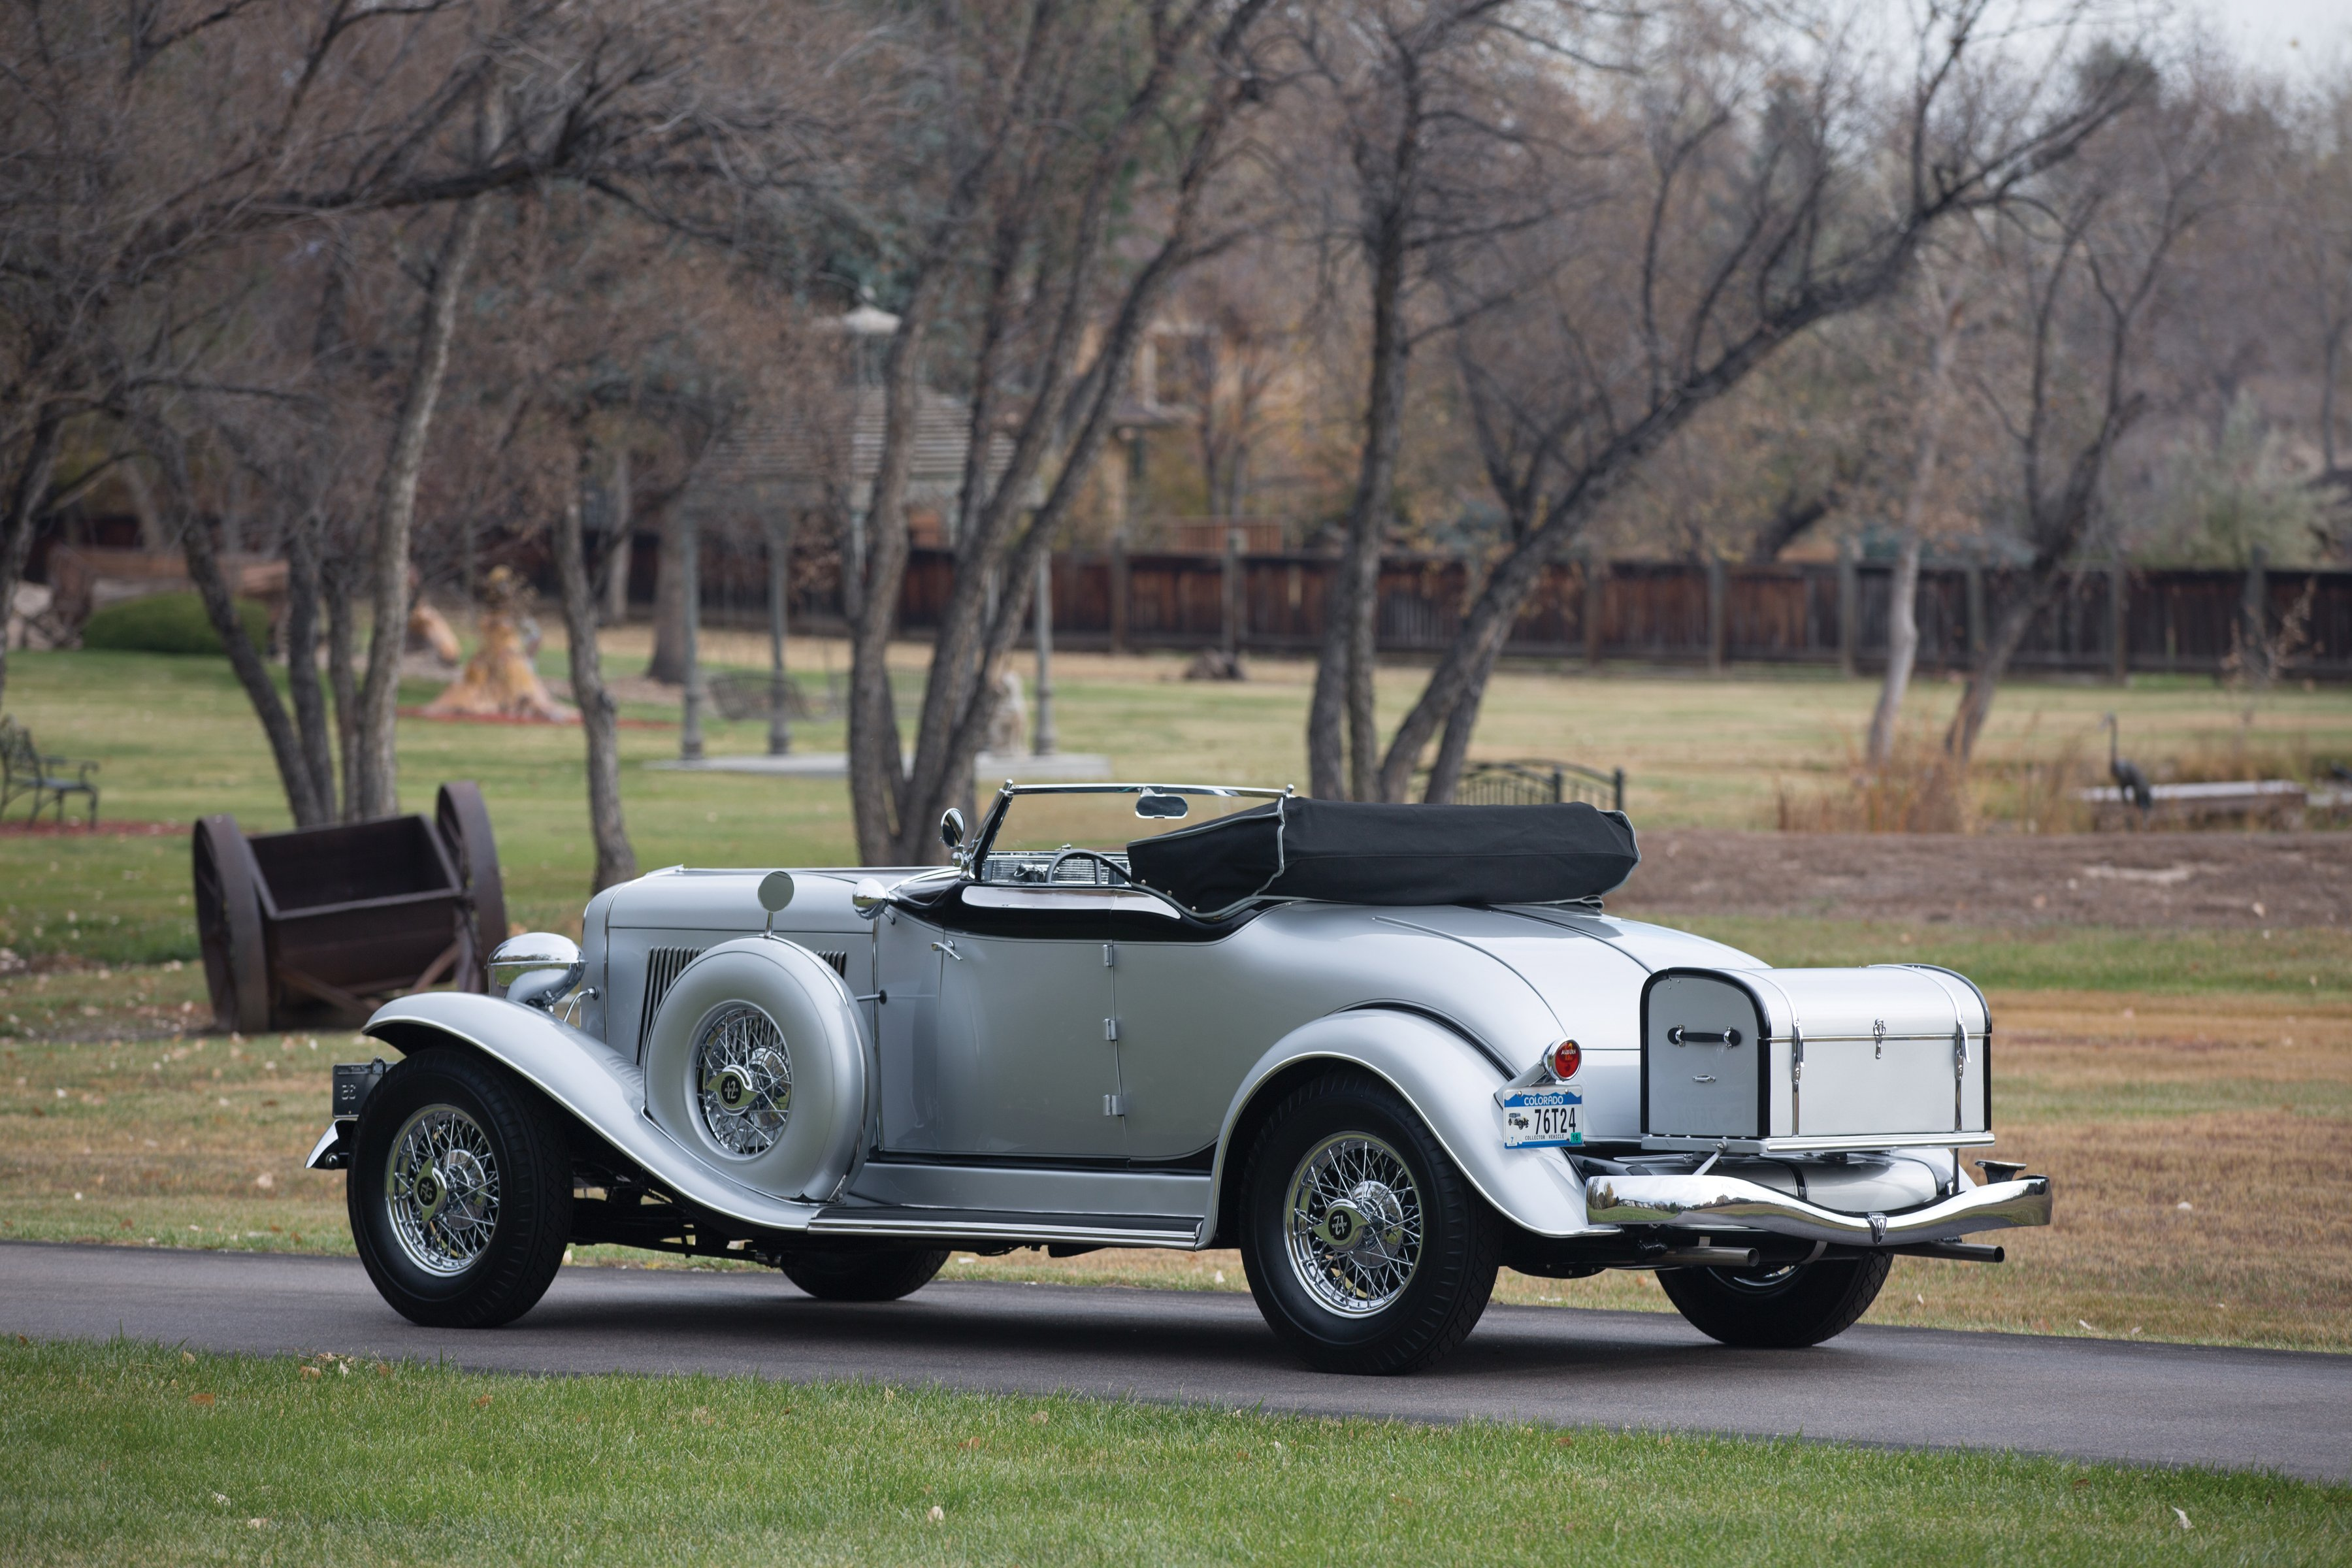 1934 auburn v12 1250 salon dual ratio convertible luxury for 1934 auburn 1250 salon cabriolet